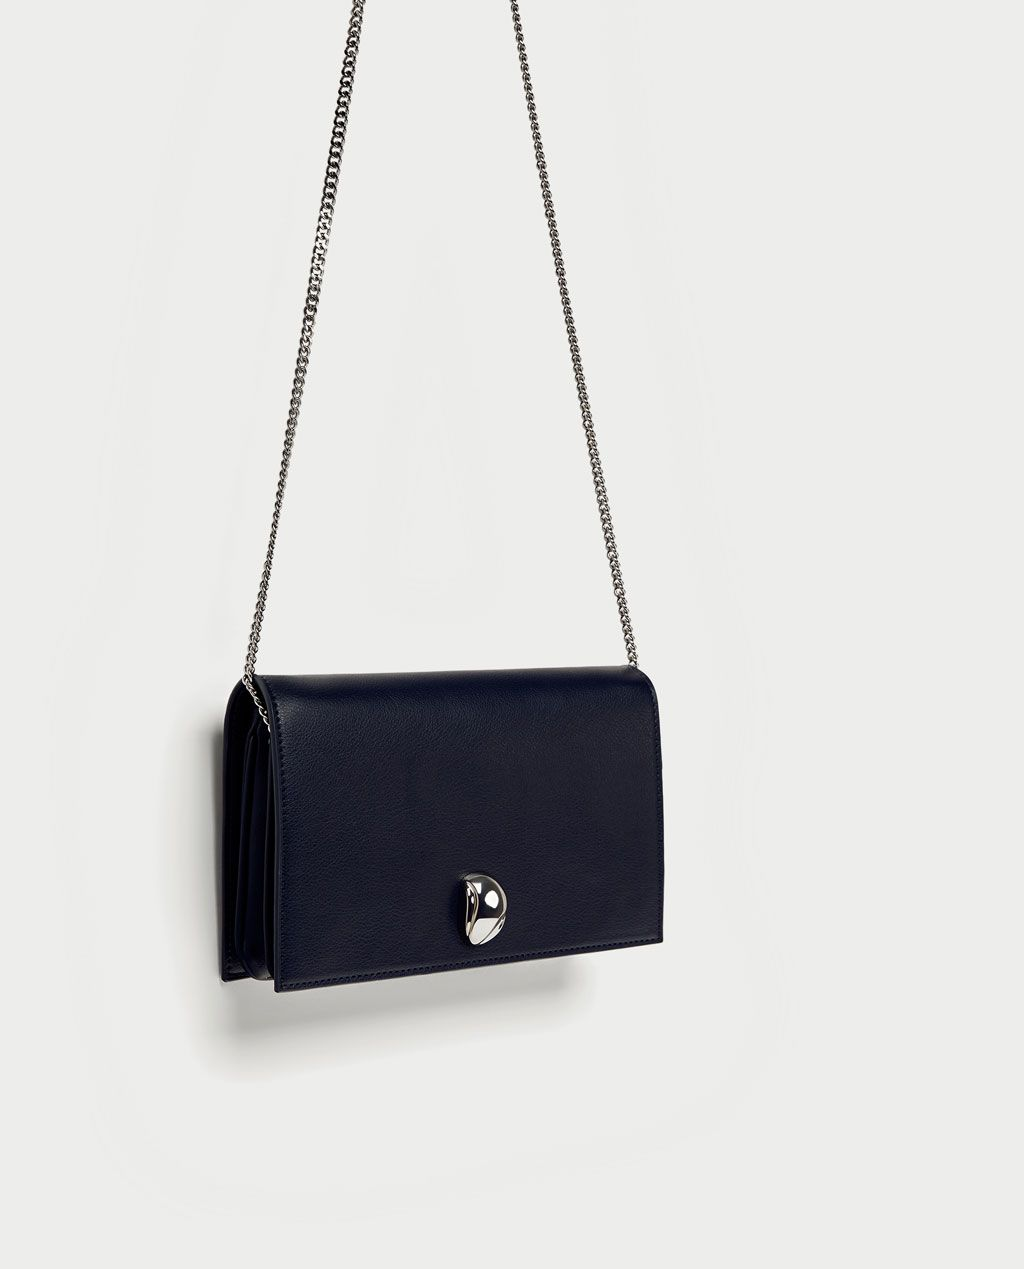 d8fc0fa69d8 Image 1 of CROSSBODY BAG WITH METAL DETAIL from Zara | Fashun ...